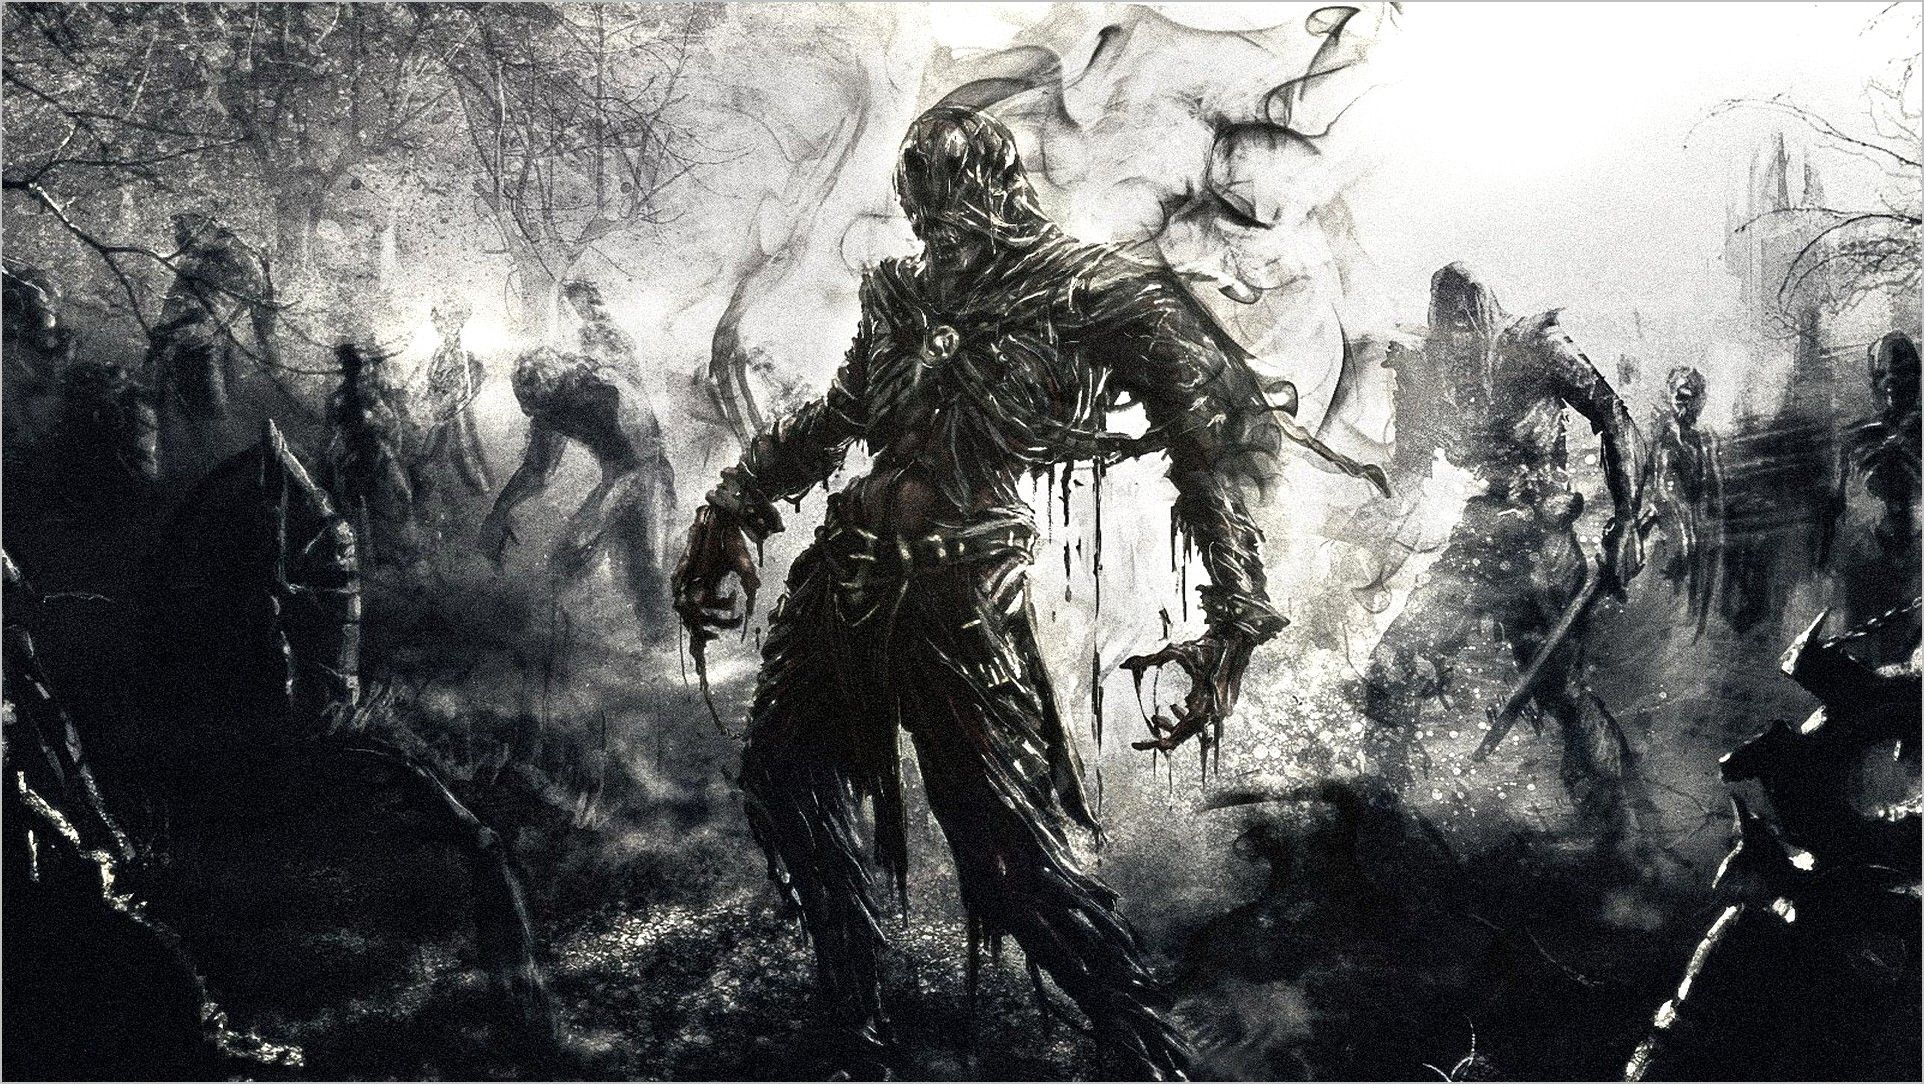 Pc Gaming Wallpaper 4k Black And White Gaming Wallpapers Zombie Wallpaper Dark Souls